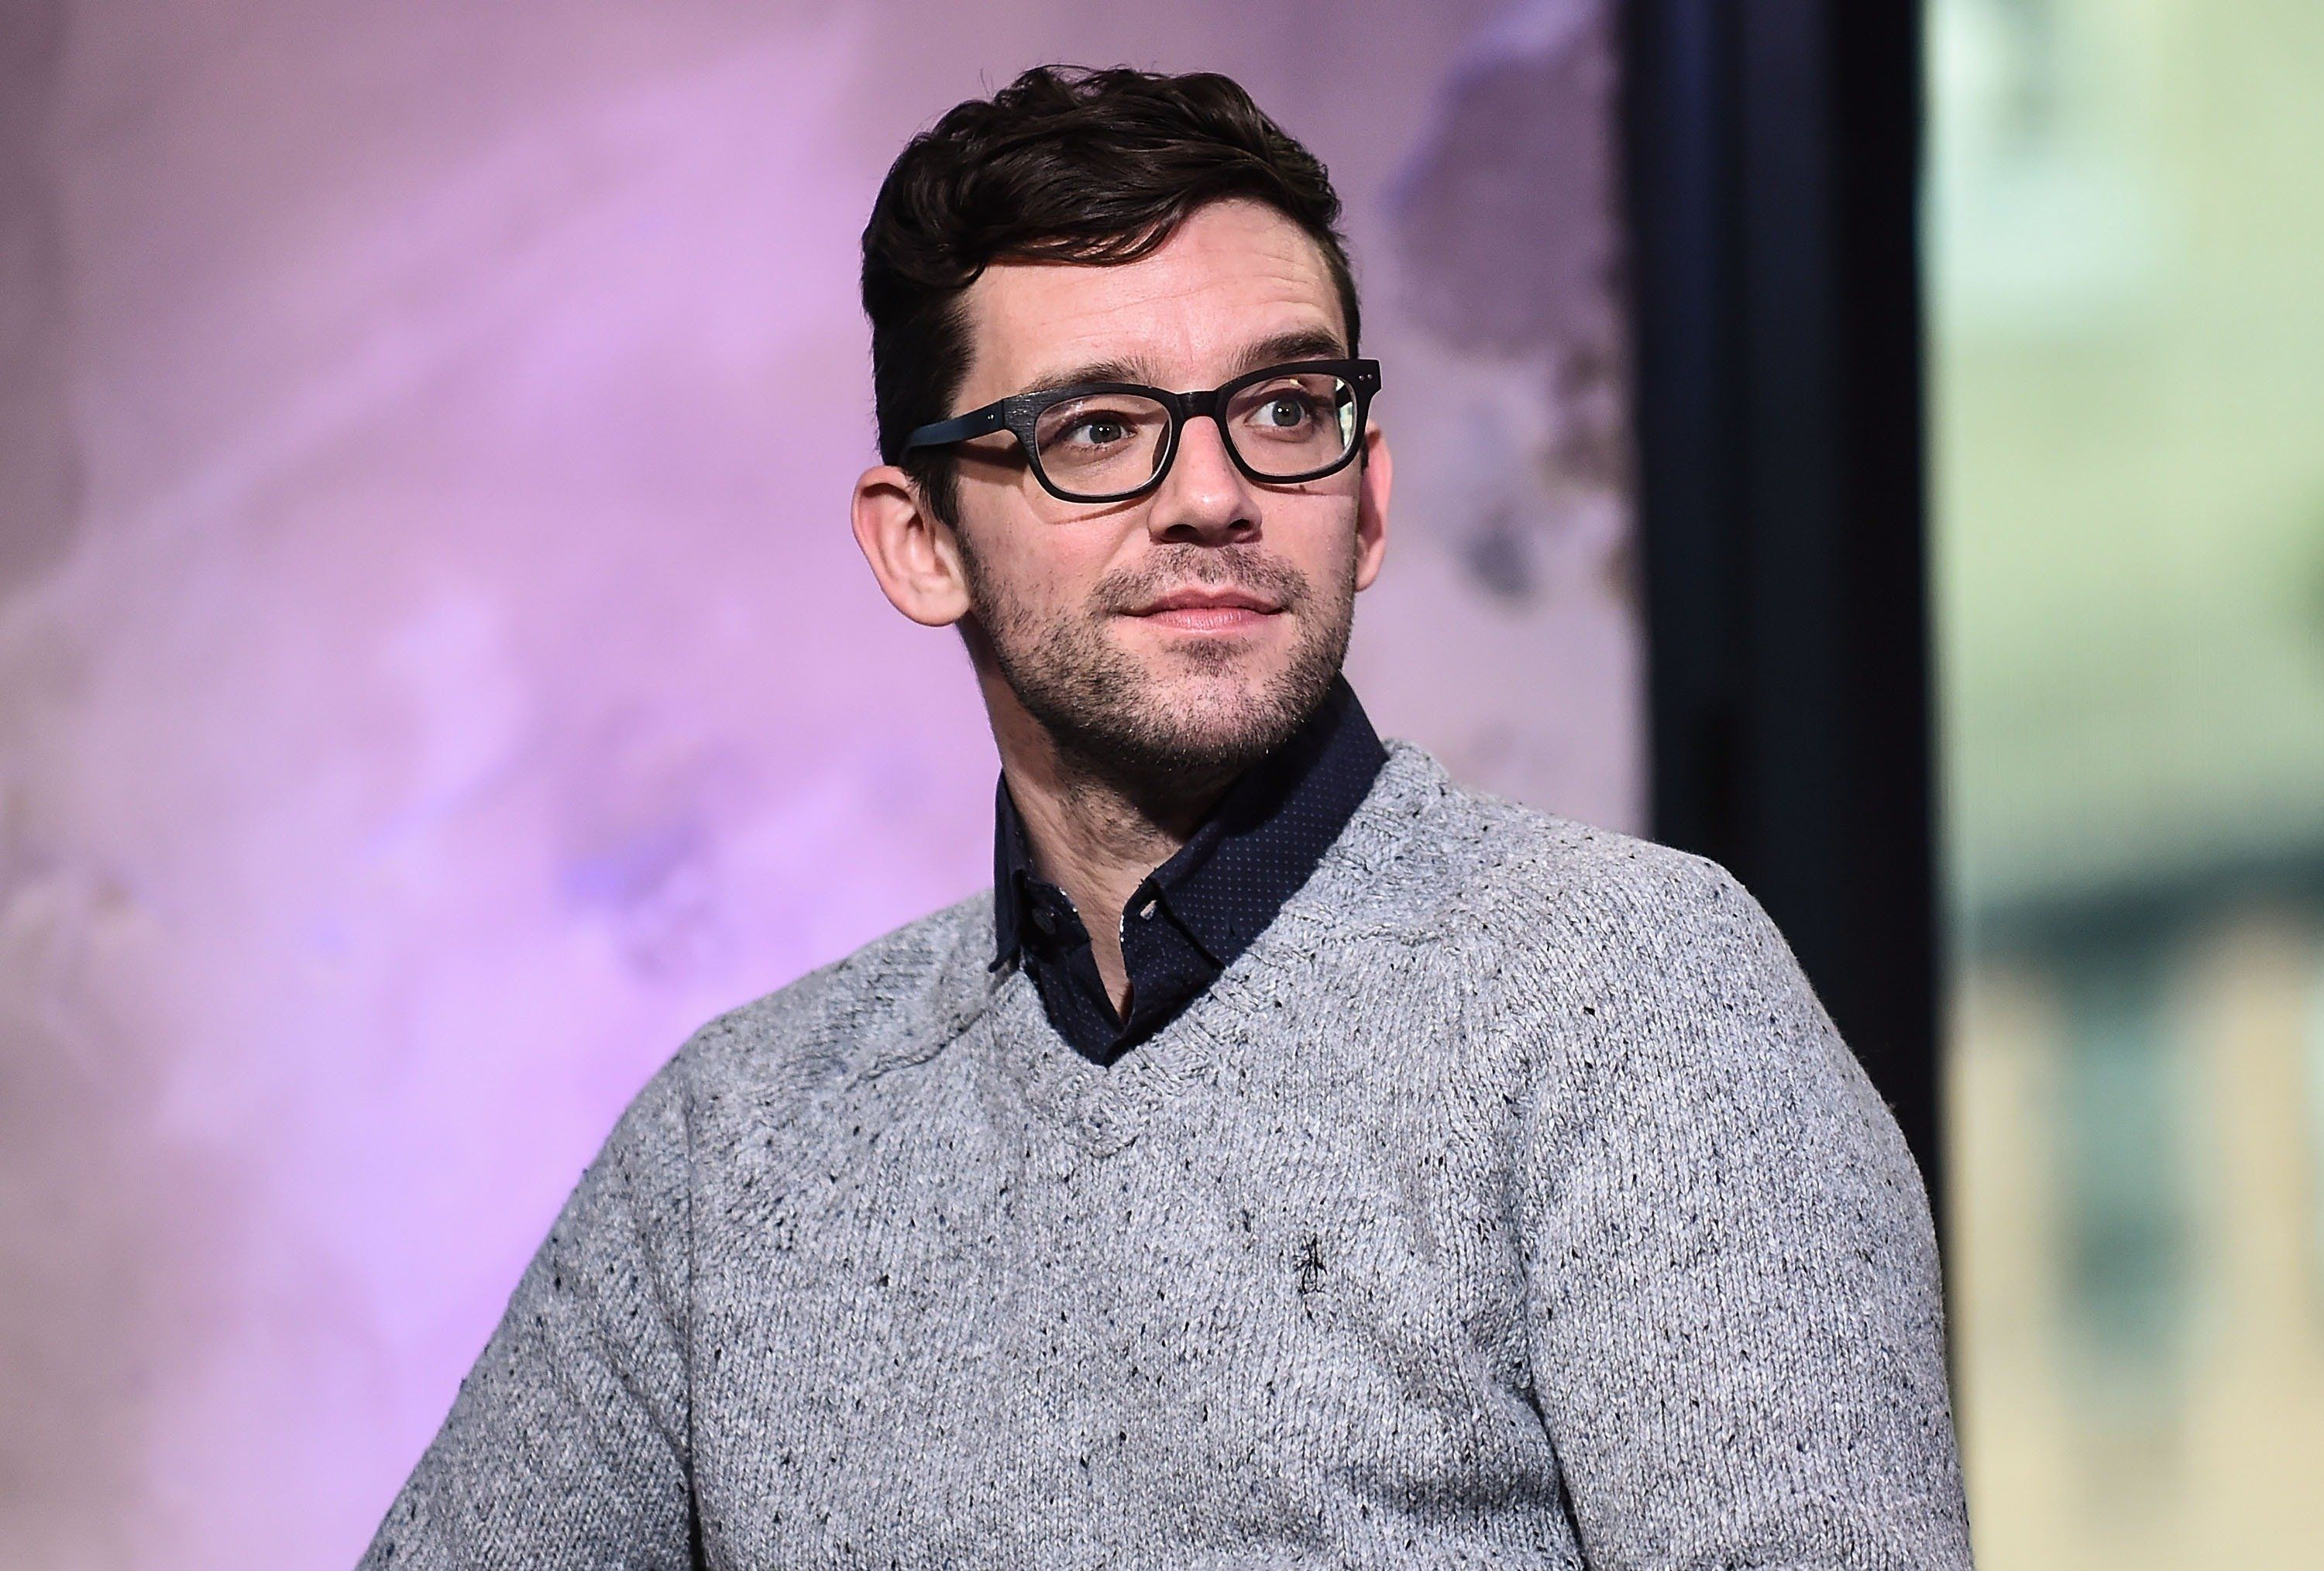 NEW YORK, NY - DECEMBER 19:  Michael Urie attends AOL Build to discuss the show 'Bright Colors And Bold Patterns' at AOL HQ on December 19, 2016 in New York City.  (Photo by Daniel Zuchnik/WireImage)